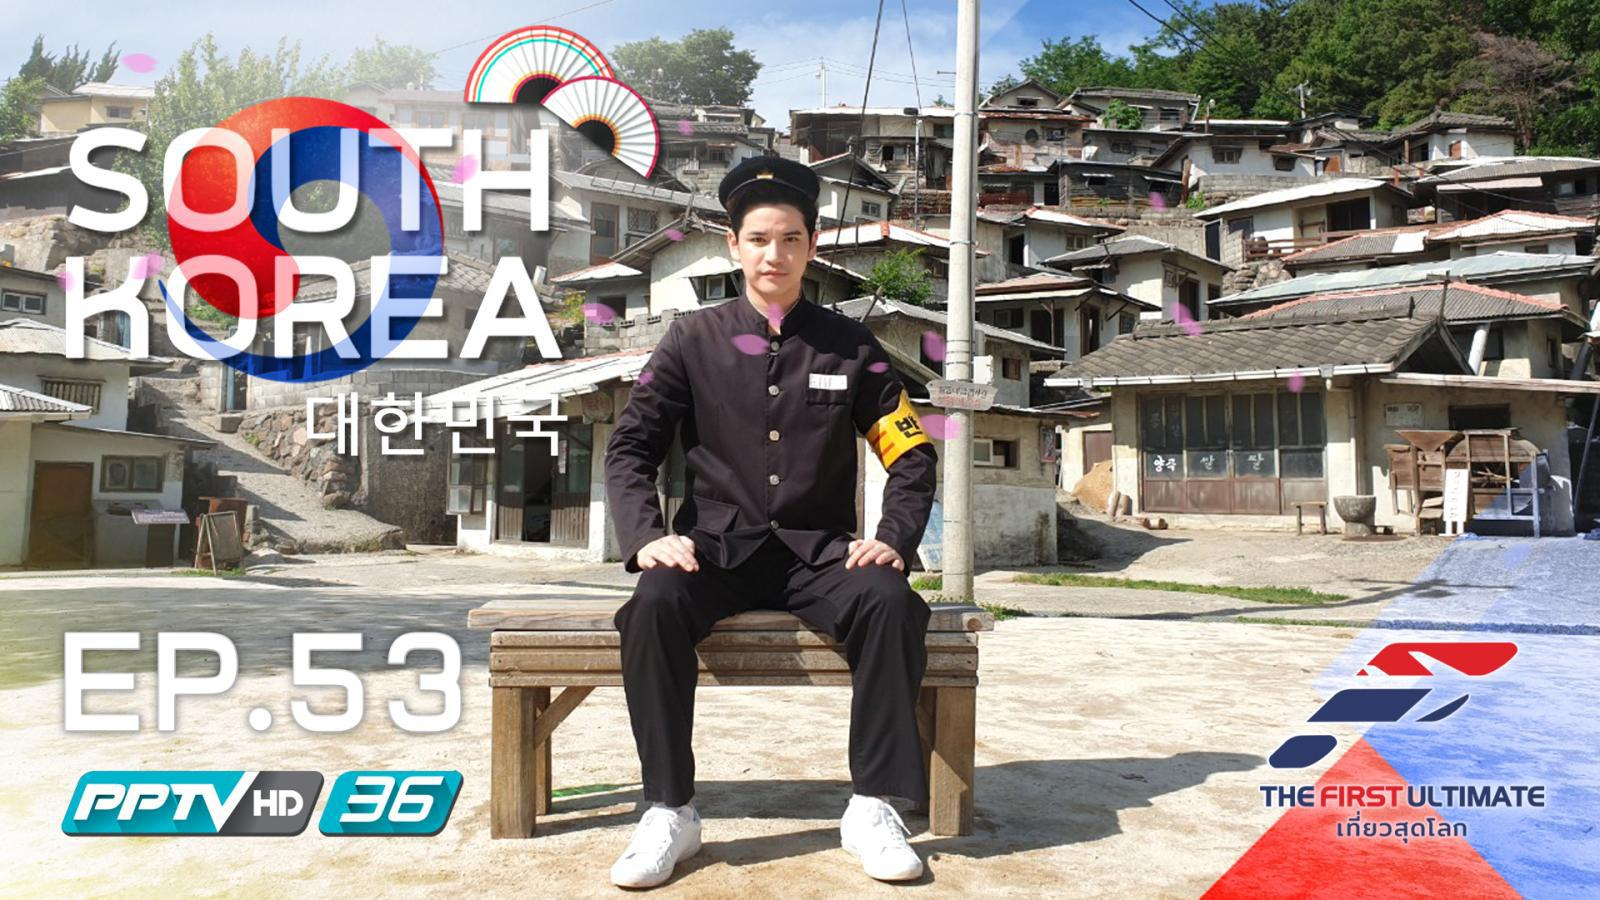 South Korea ตอน 2